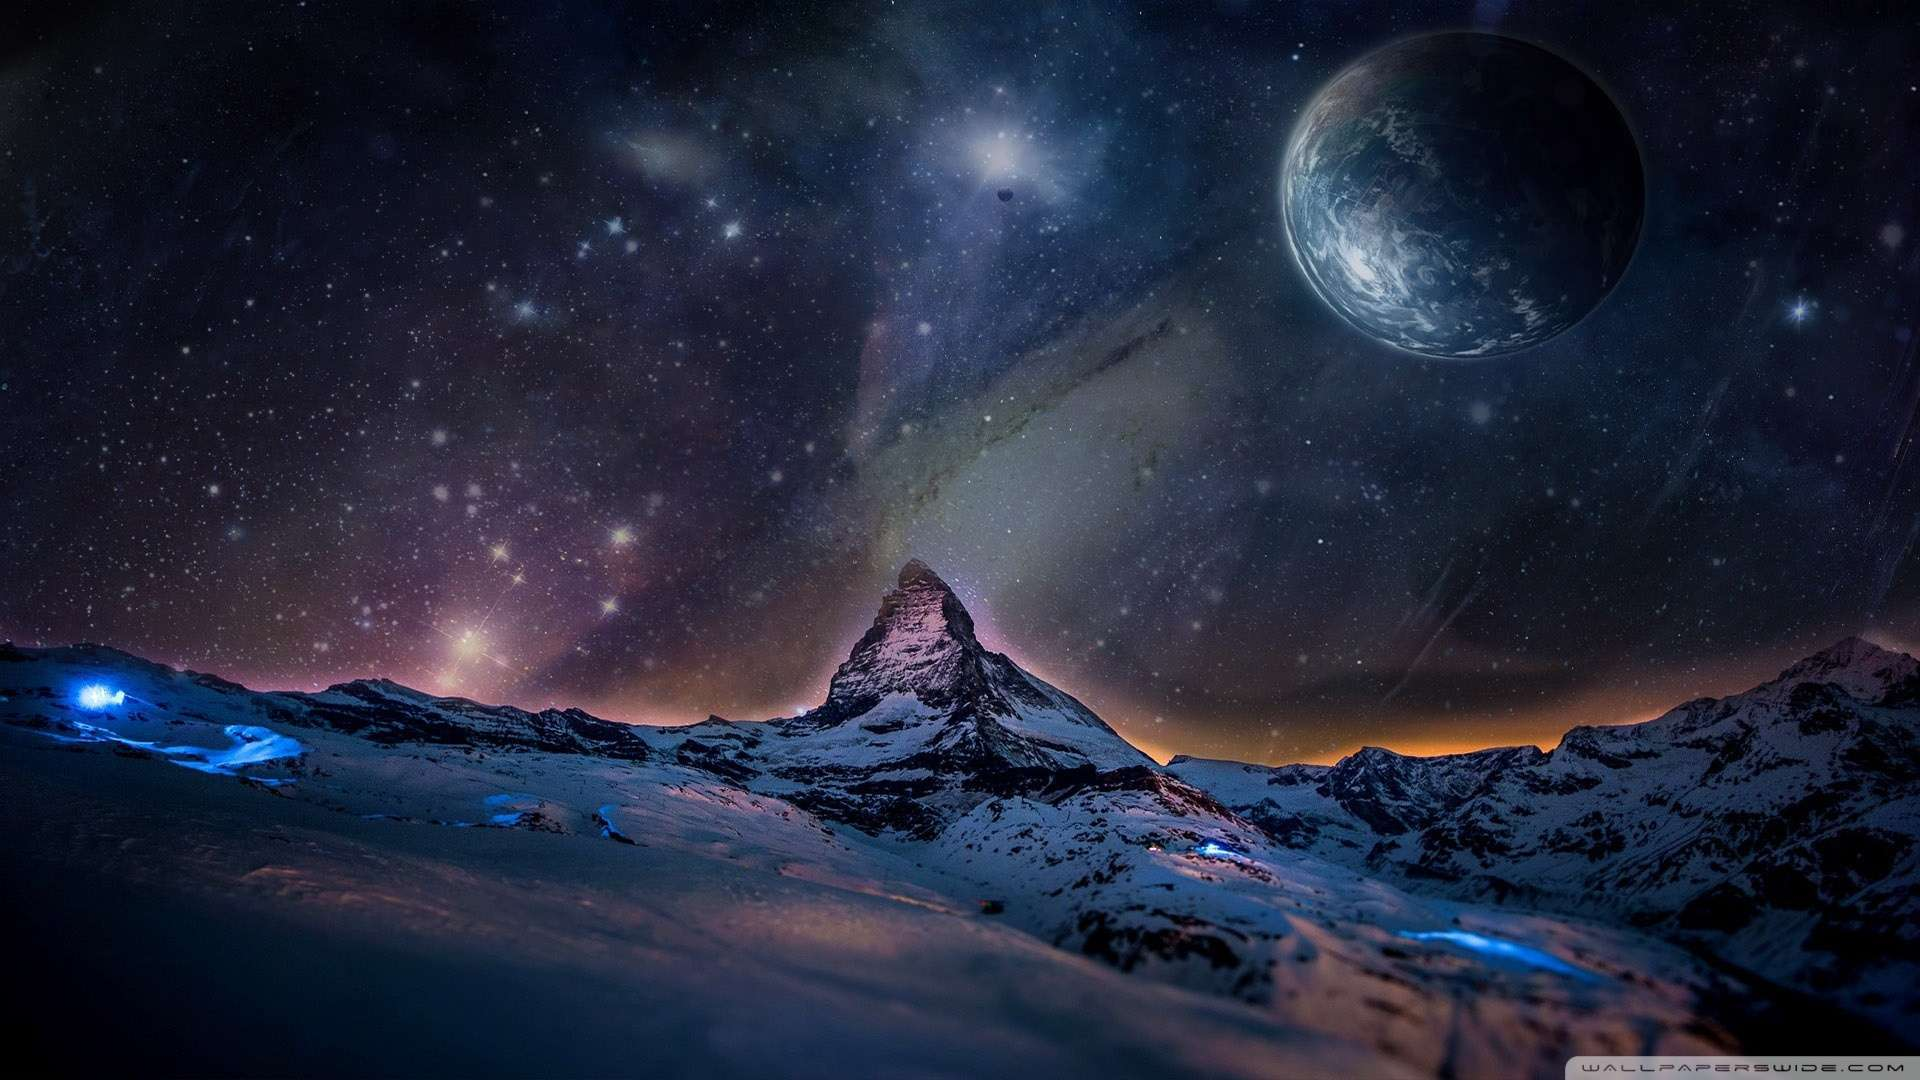 Asus Rog Wallpaper 1920x1080 in addition 1080p Space Wallpapers moreover Chocolate Chip Cookies Wallpaper 4970 furthermore Artistic Human 220381 also Mountain Lake Wallpaper. on high def backgrounds wallpapers